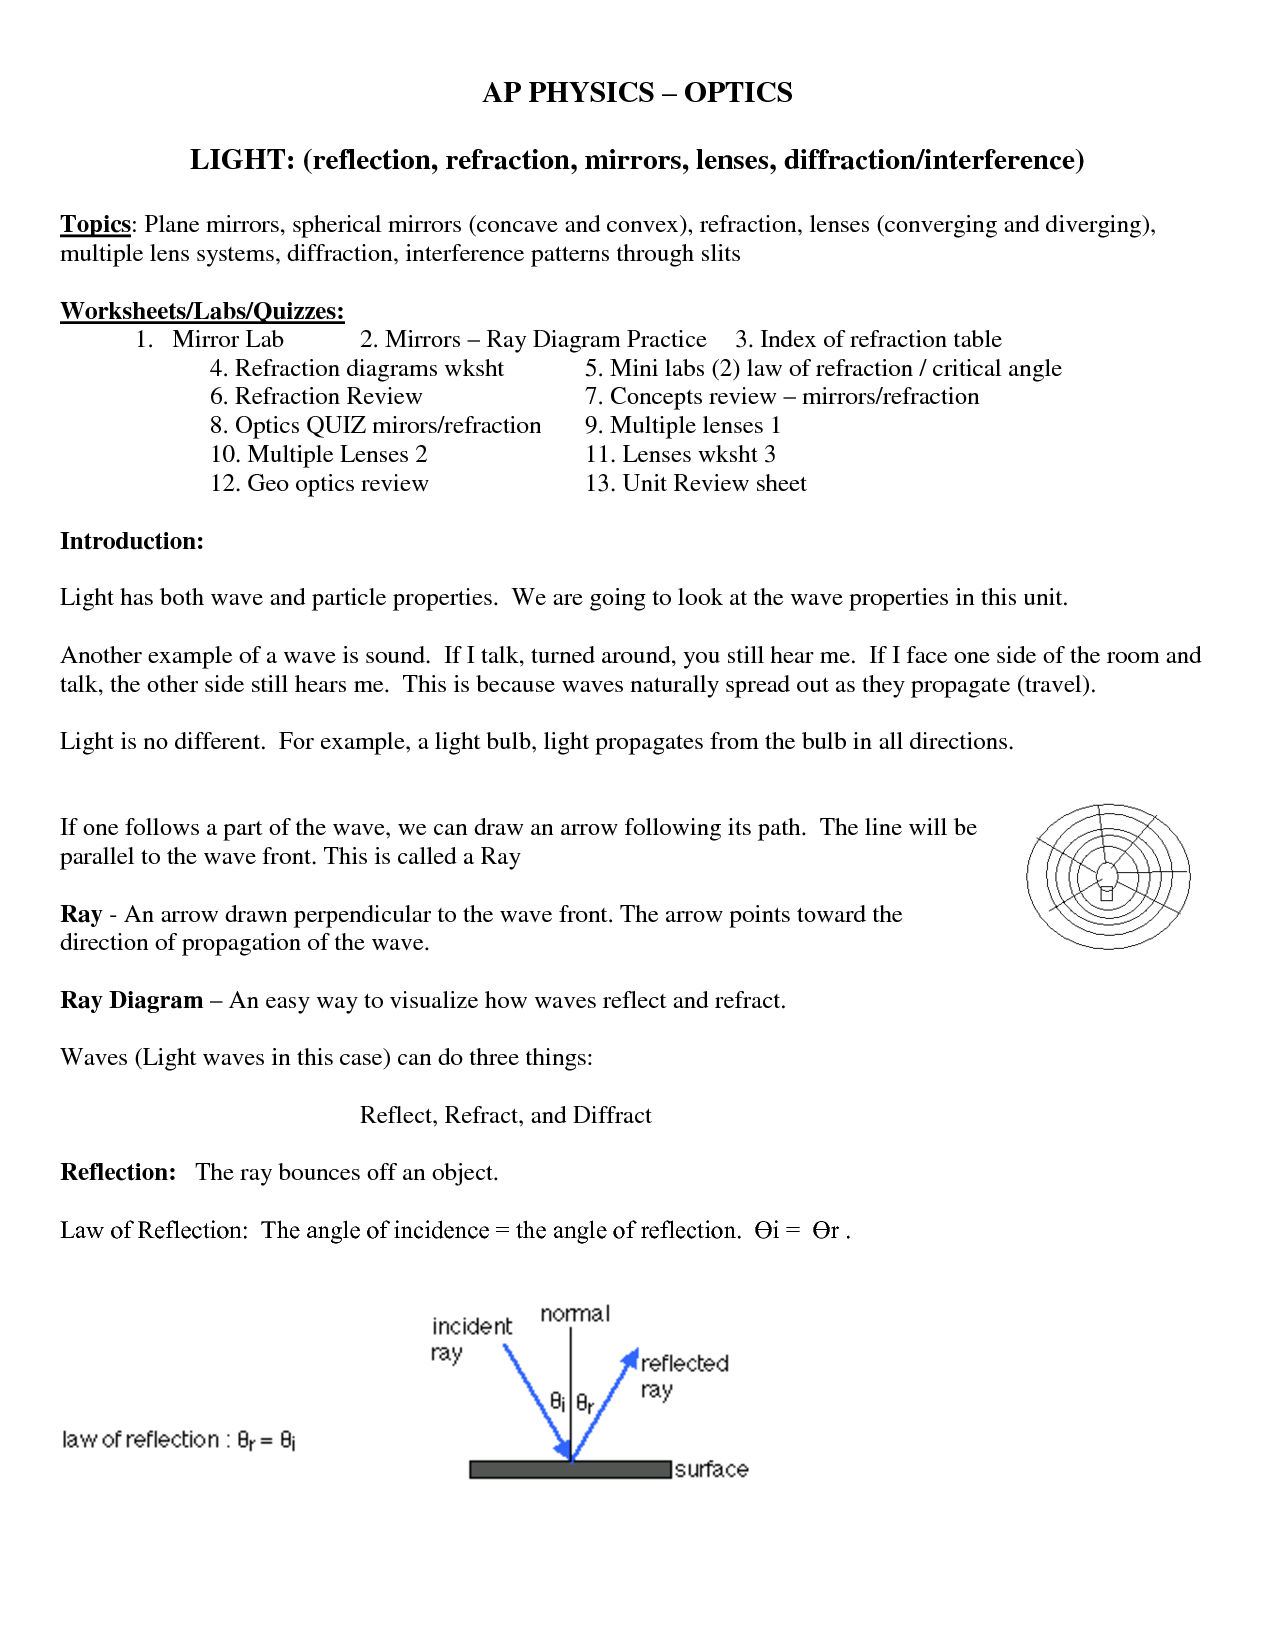 Reflection And Refraction Worksheet Answers